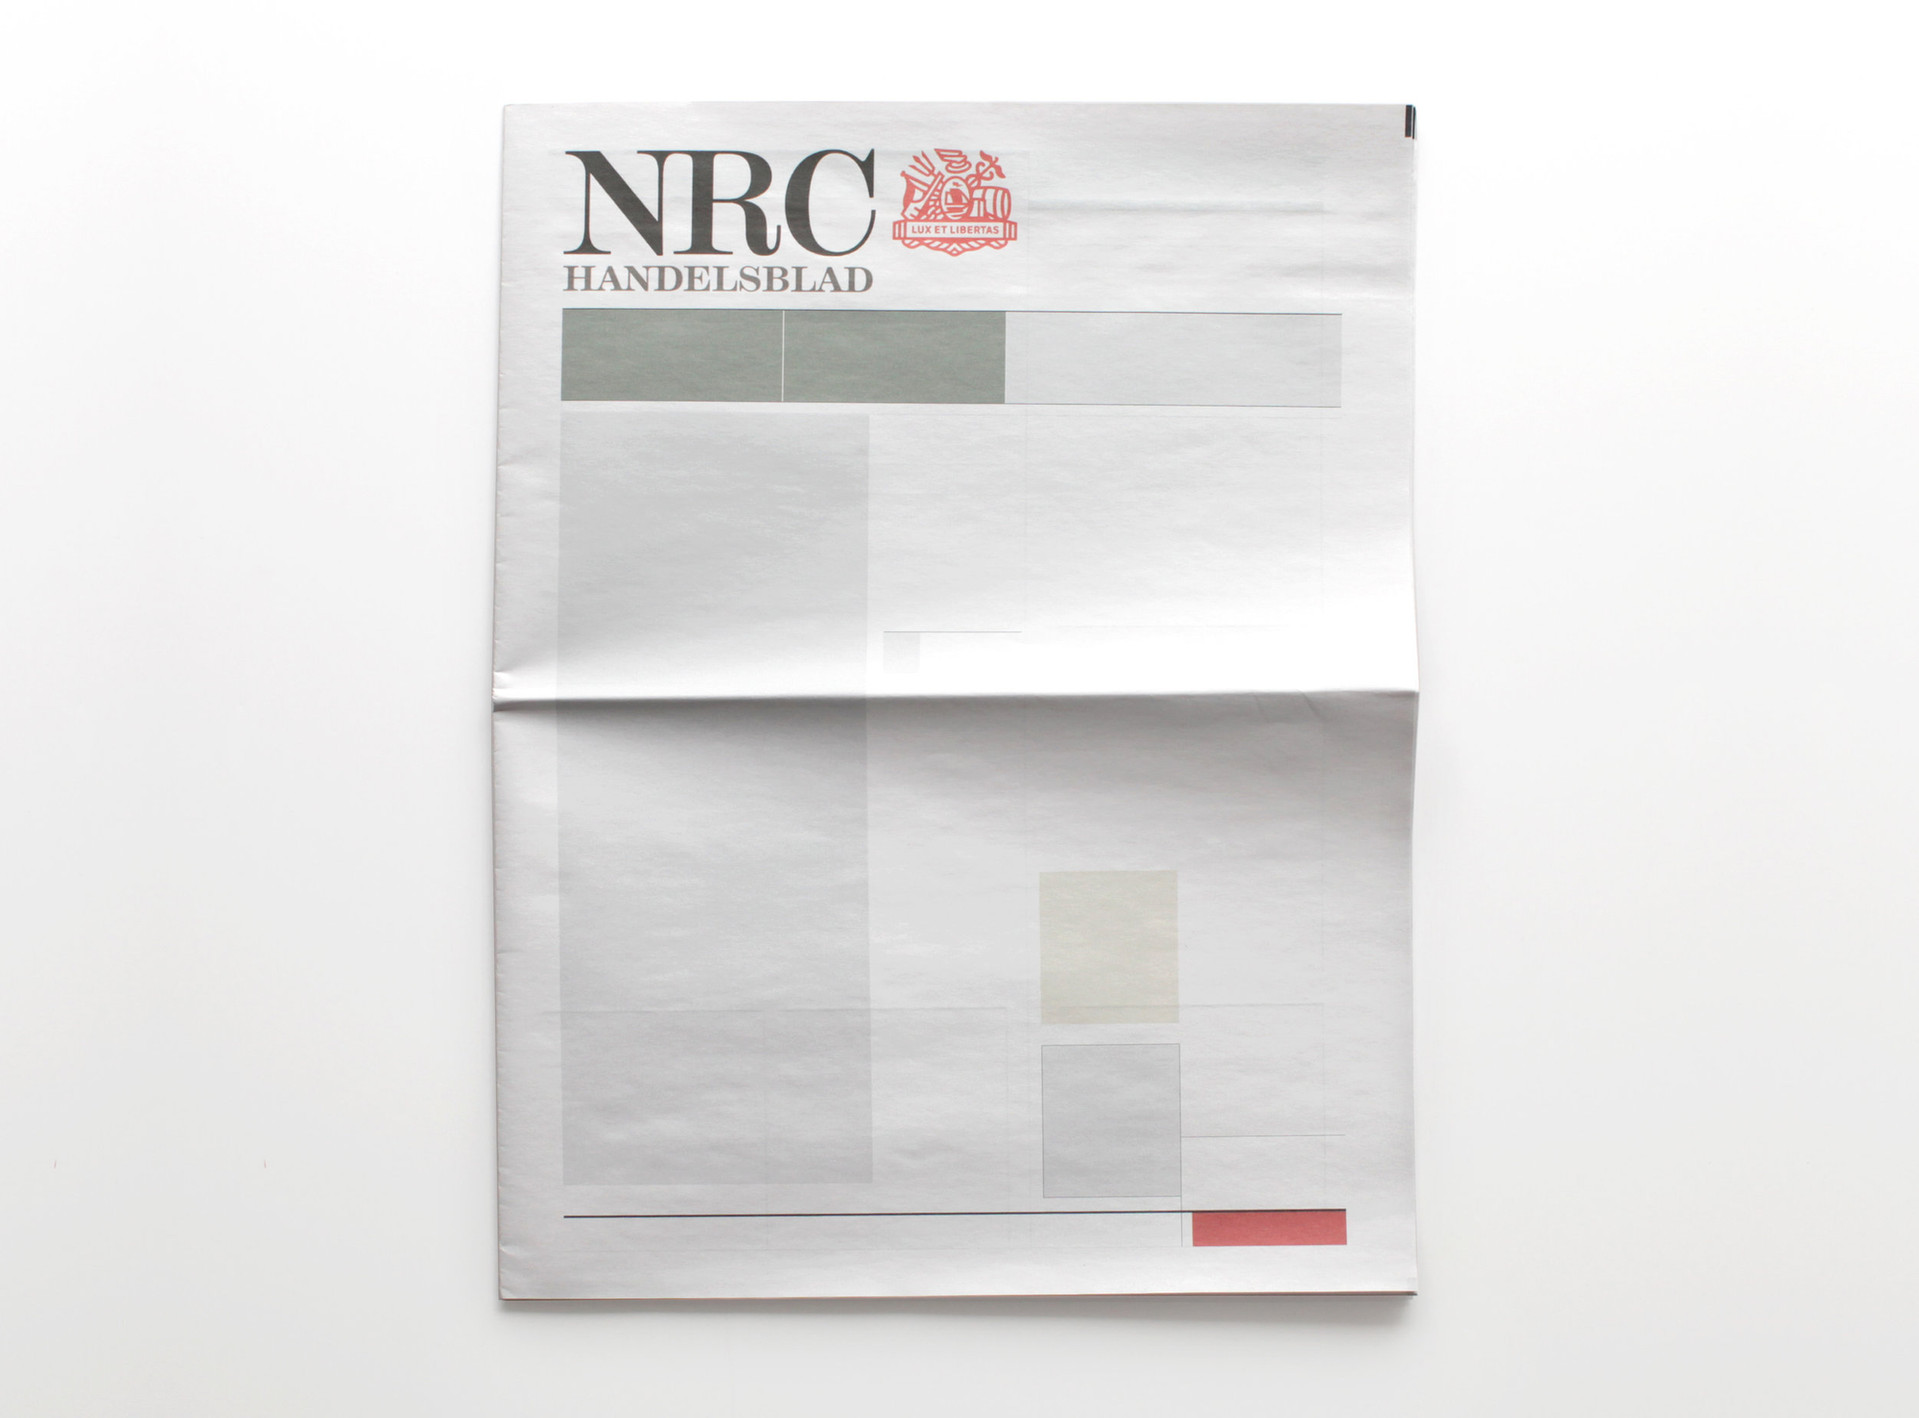 NOTHING IN NRC: Newspapers from around the world with nothing in them.